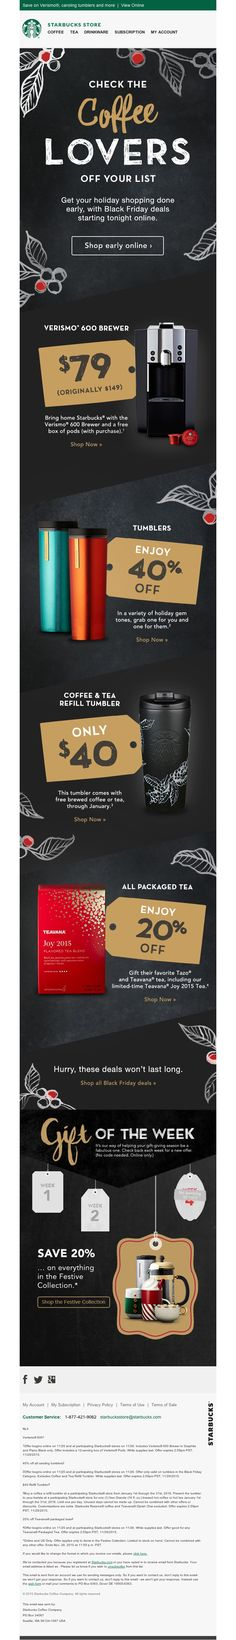 27 Awesome eCommerce Email Template Examples to Inspire Your Email Designs - MailBakery MailBakery Email Layout, Email Design Inspiration, Design Ideas, Sale Emails, Web Design, Newsletter Design, Email Campaign, Pretty Packaging, Email Templates